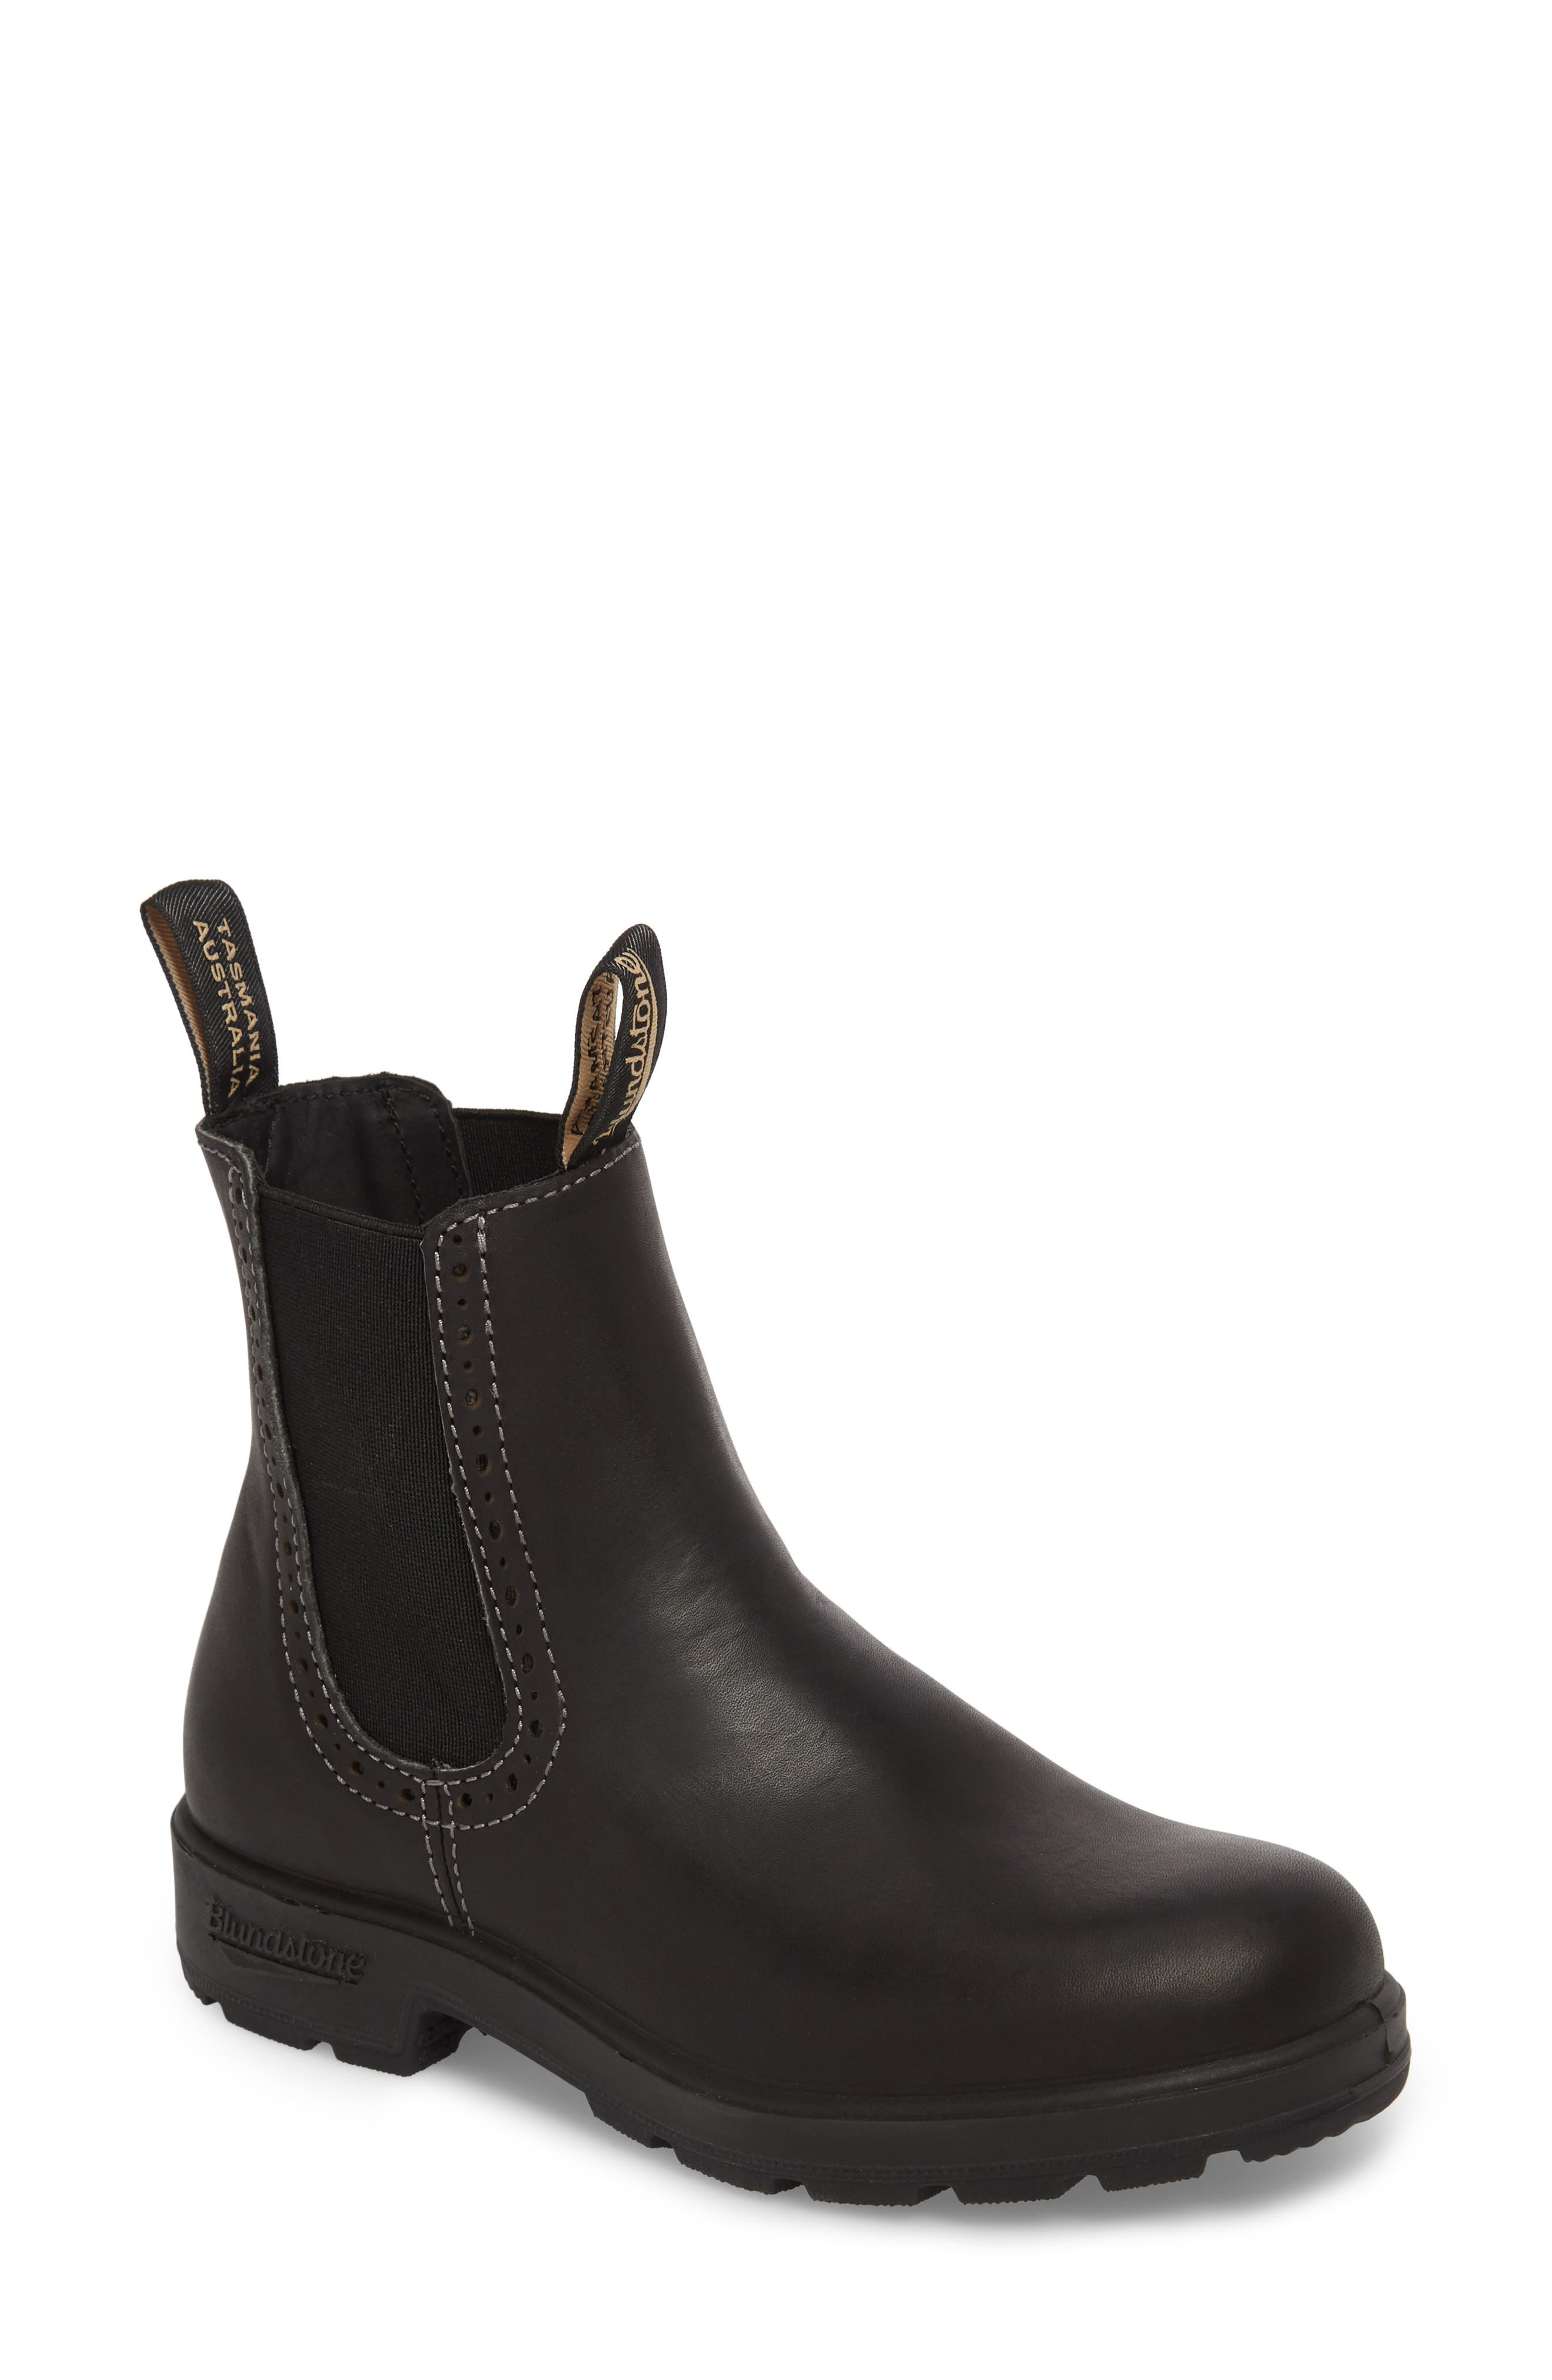 Blundstone Footwear Chelsea Boot (Women)